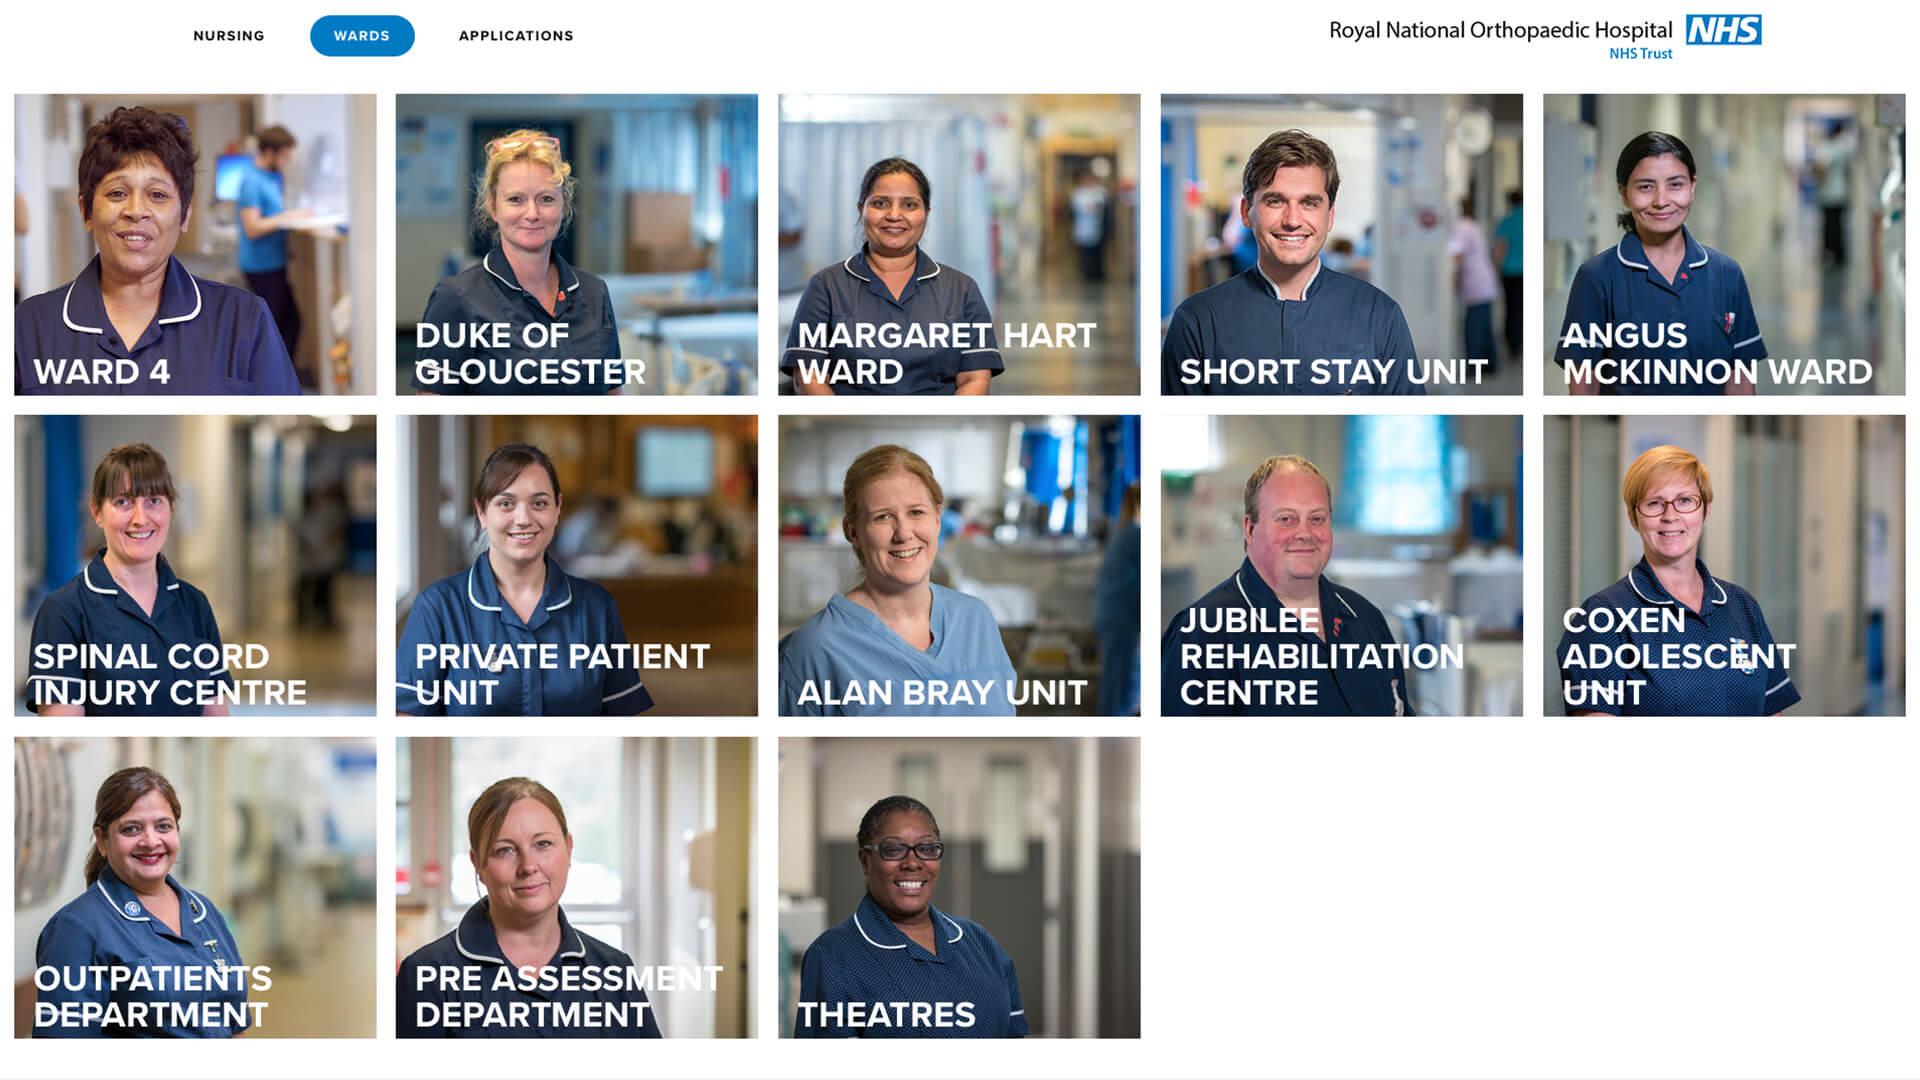 RNOH Nurse Recruitment image